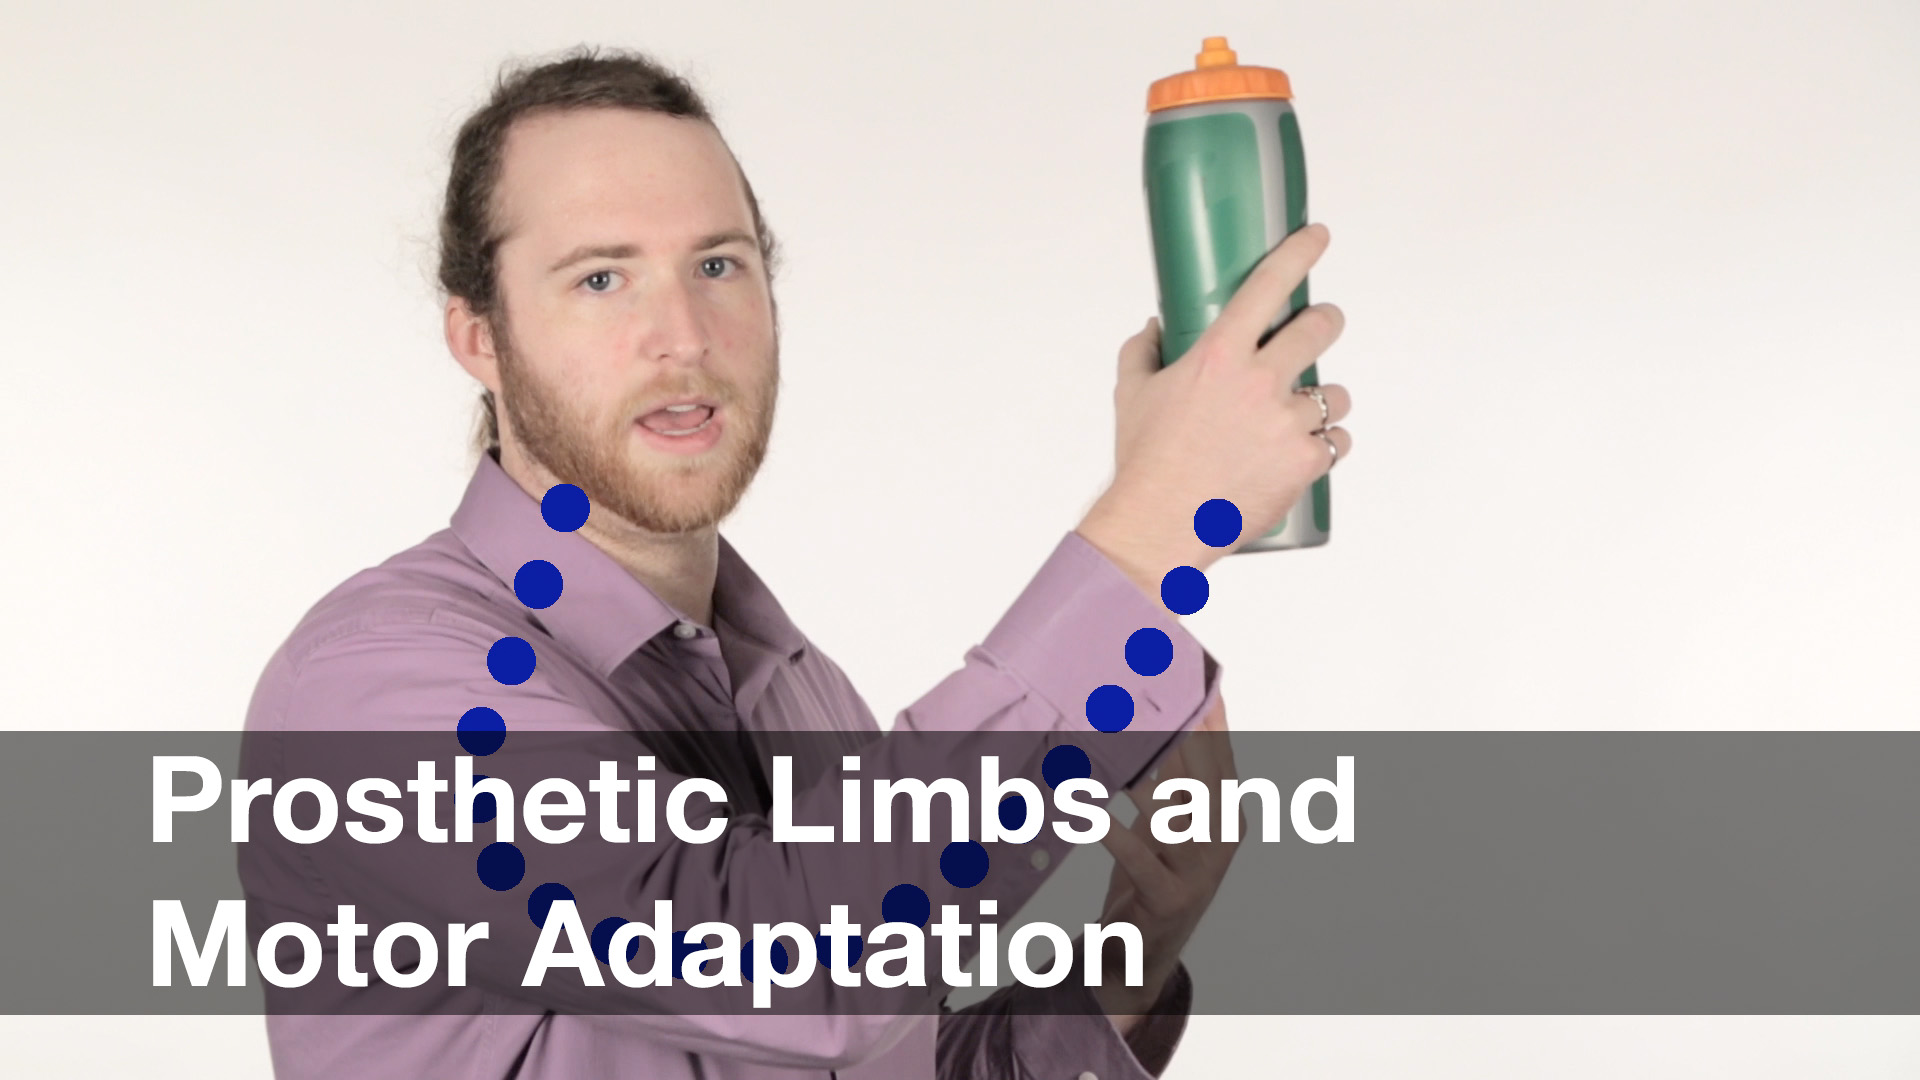 Prosthetic Limbs and Motor Adaptation